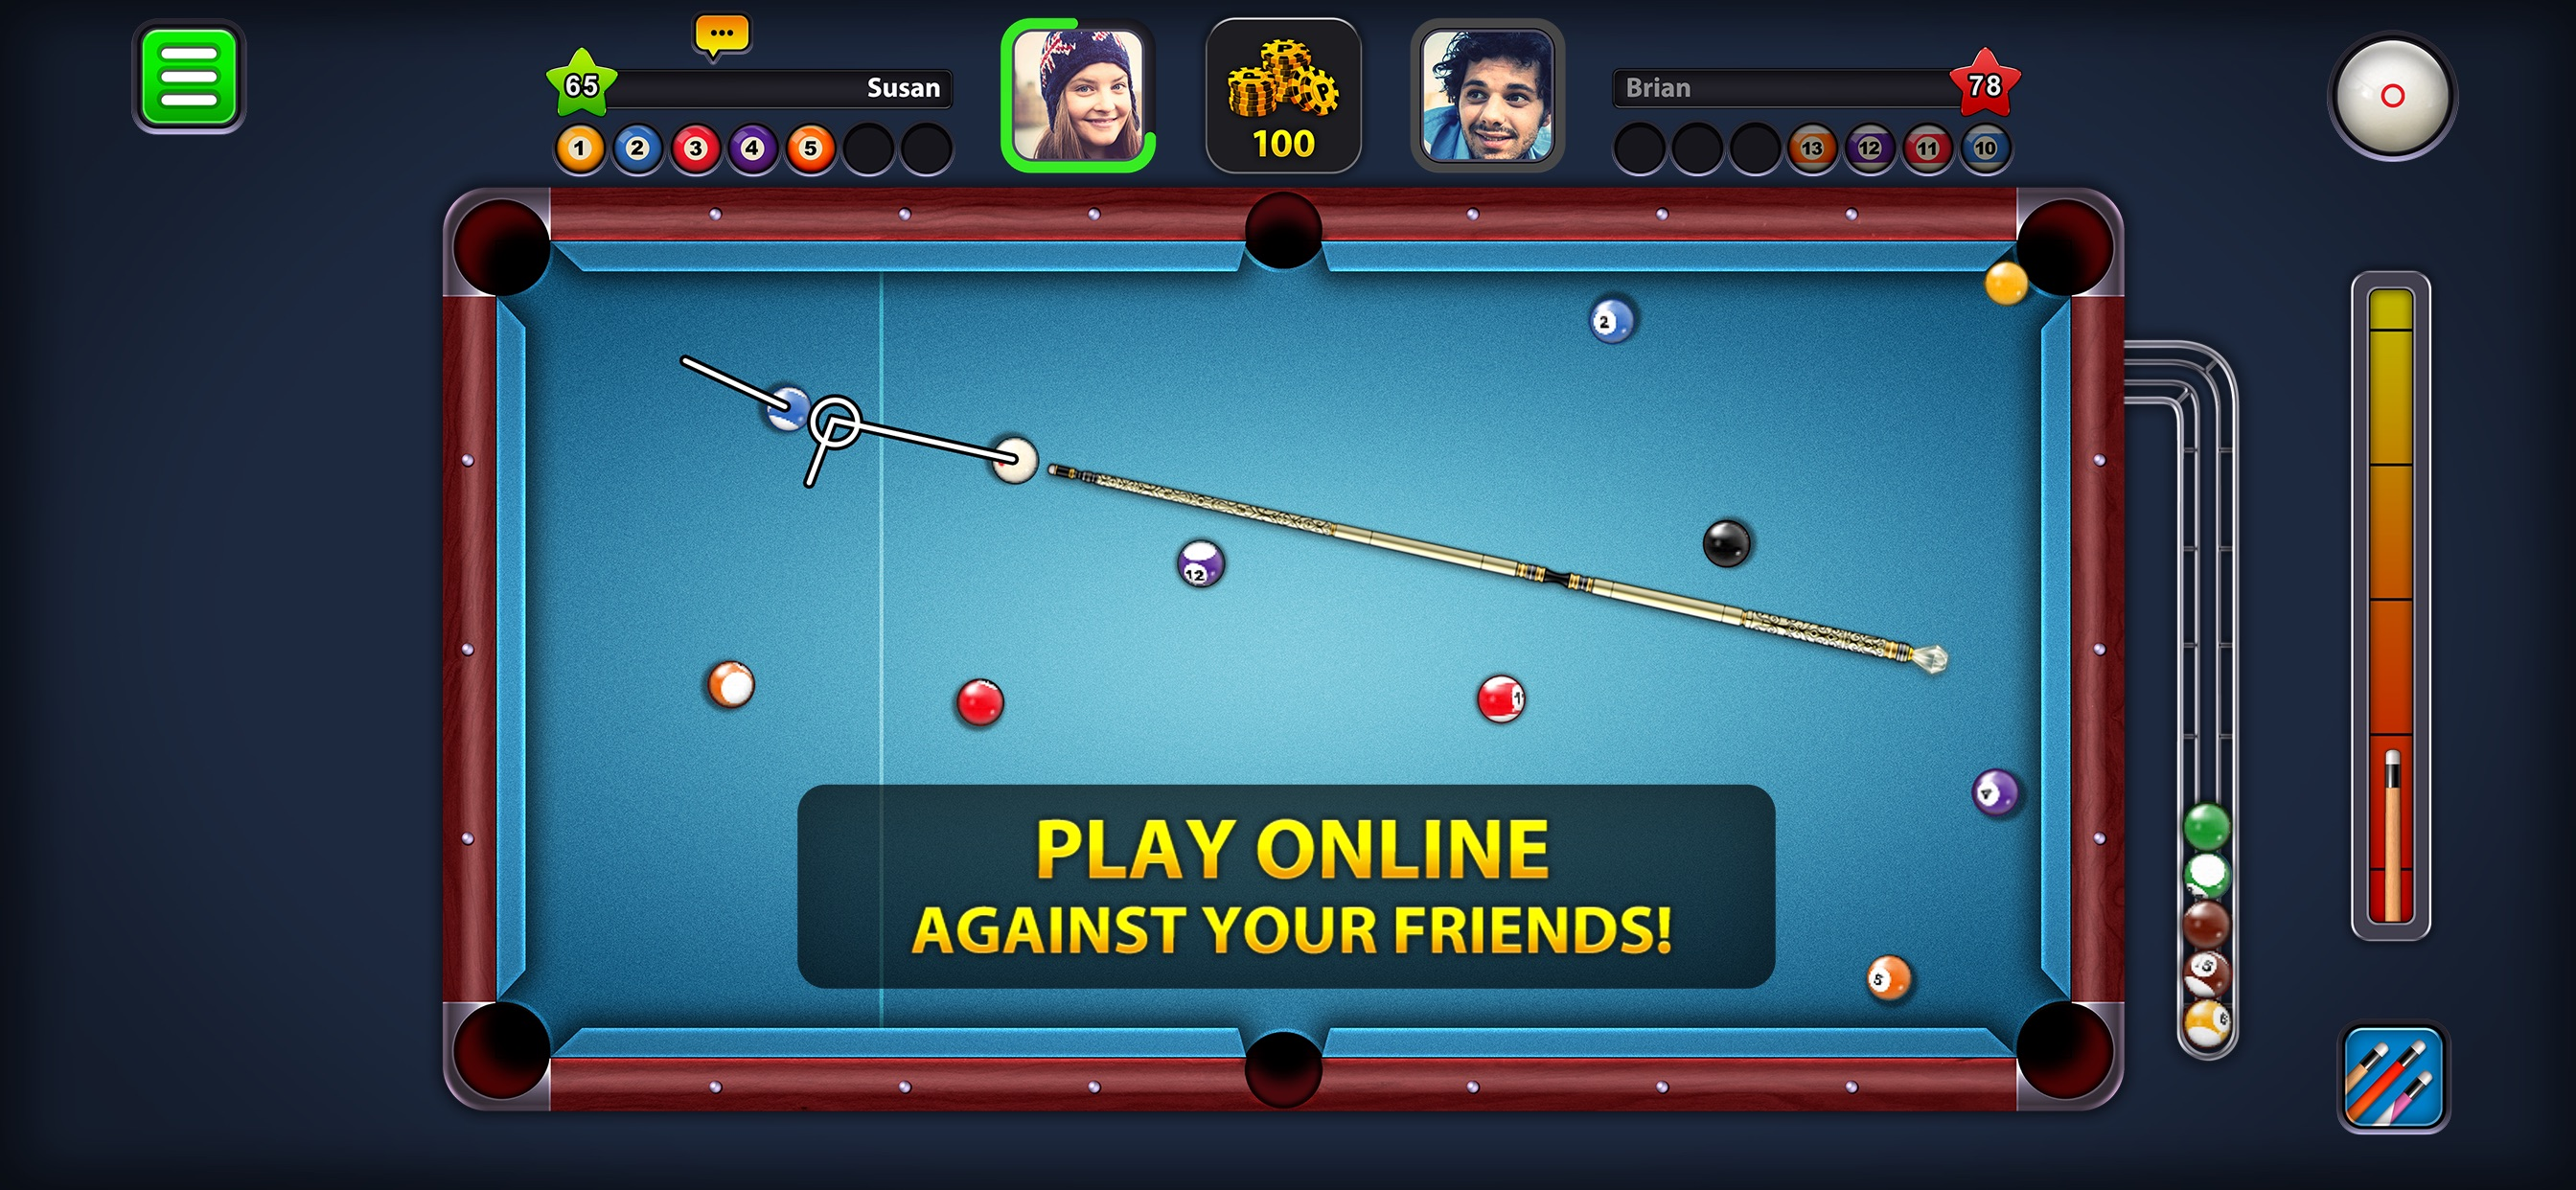 8 Ball Pool hack cheats free coins and cash